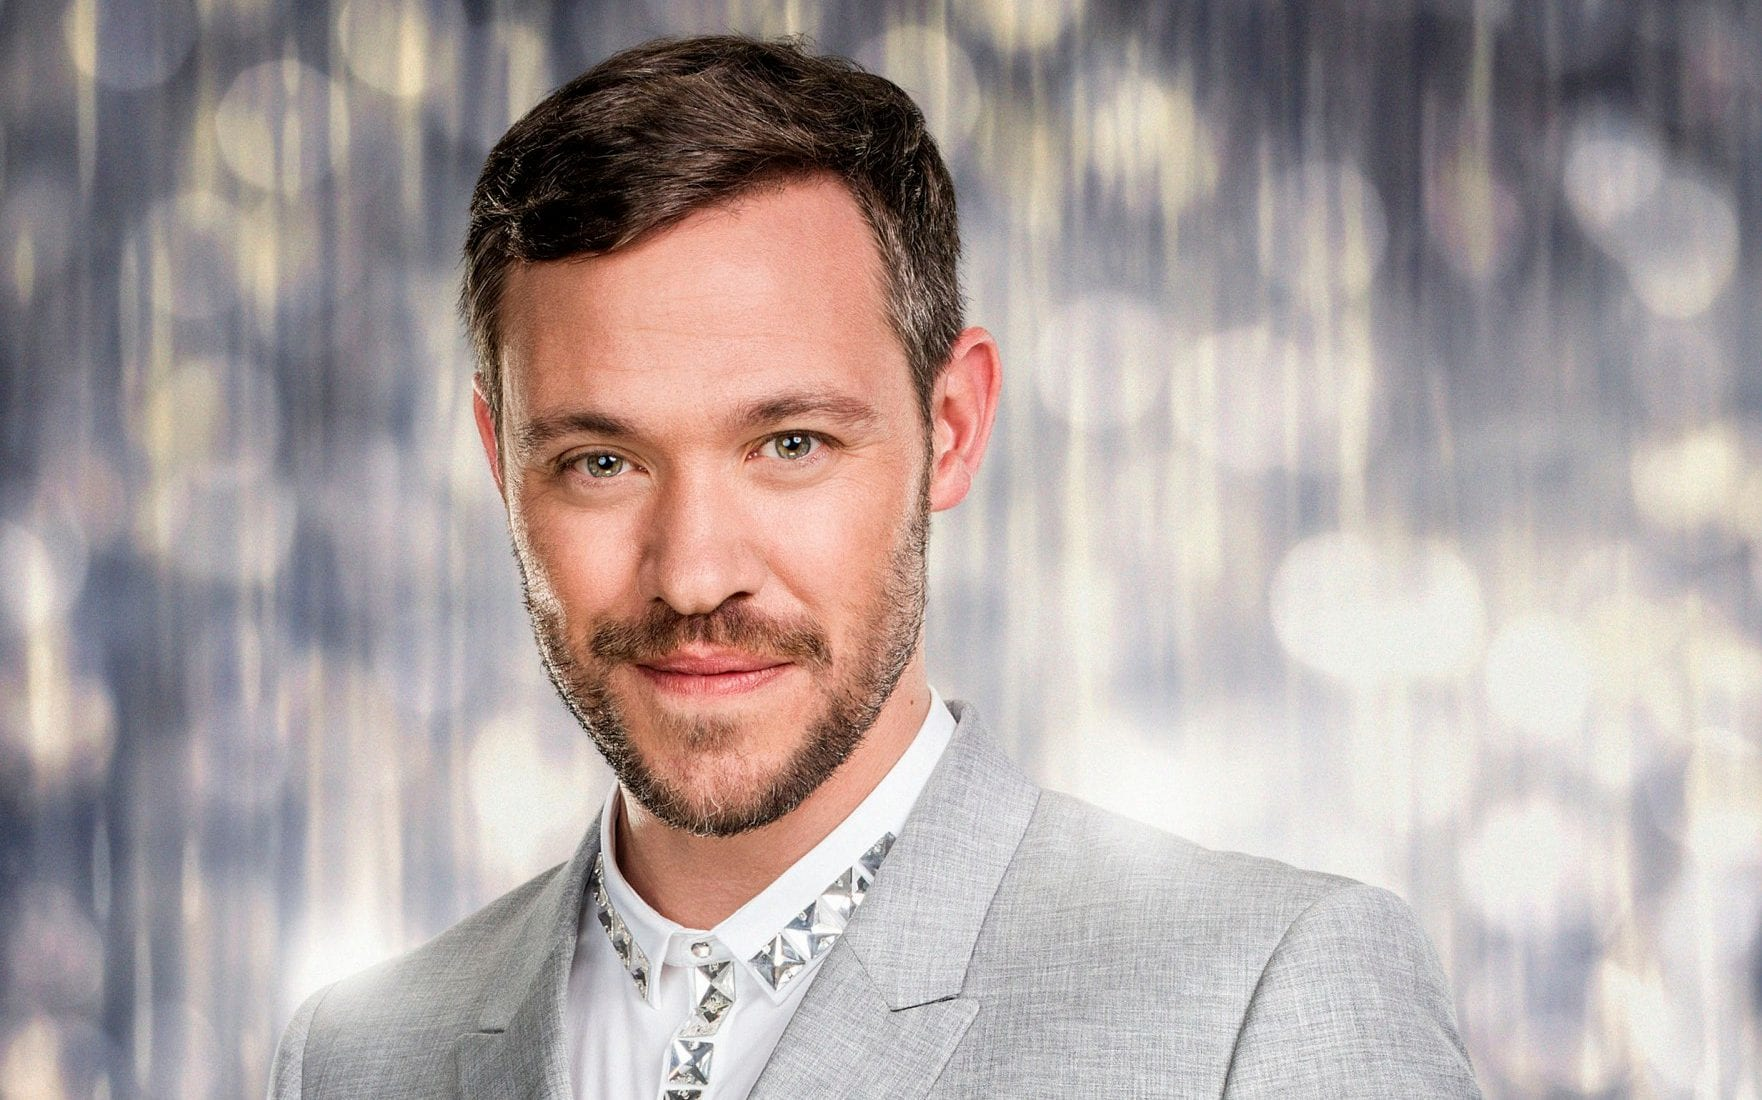 Will Young experiences homophobic abuse from London bus driver